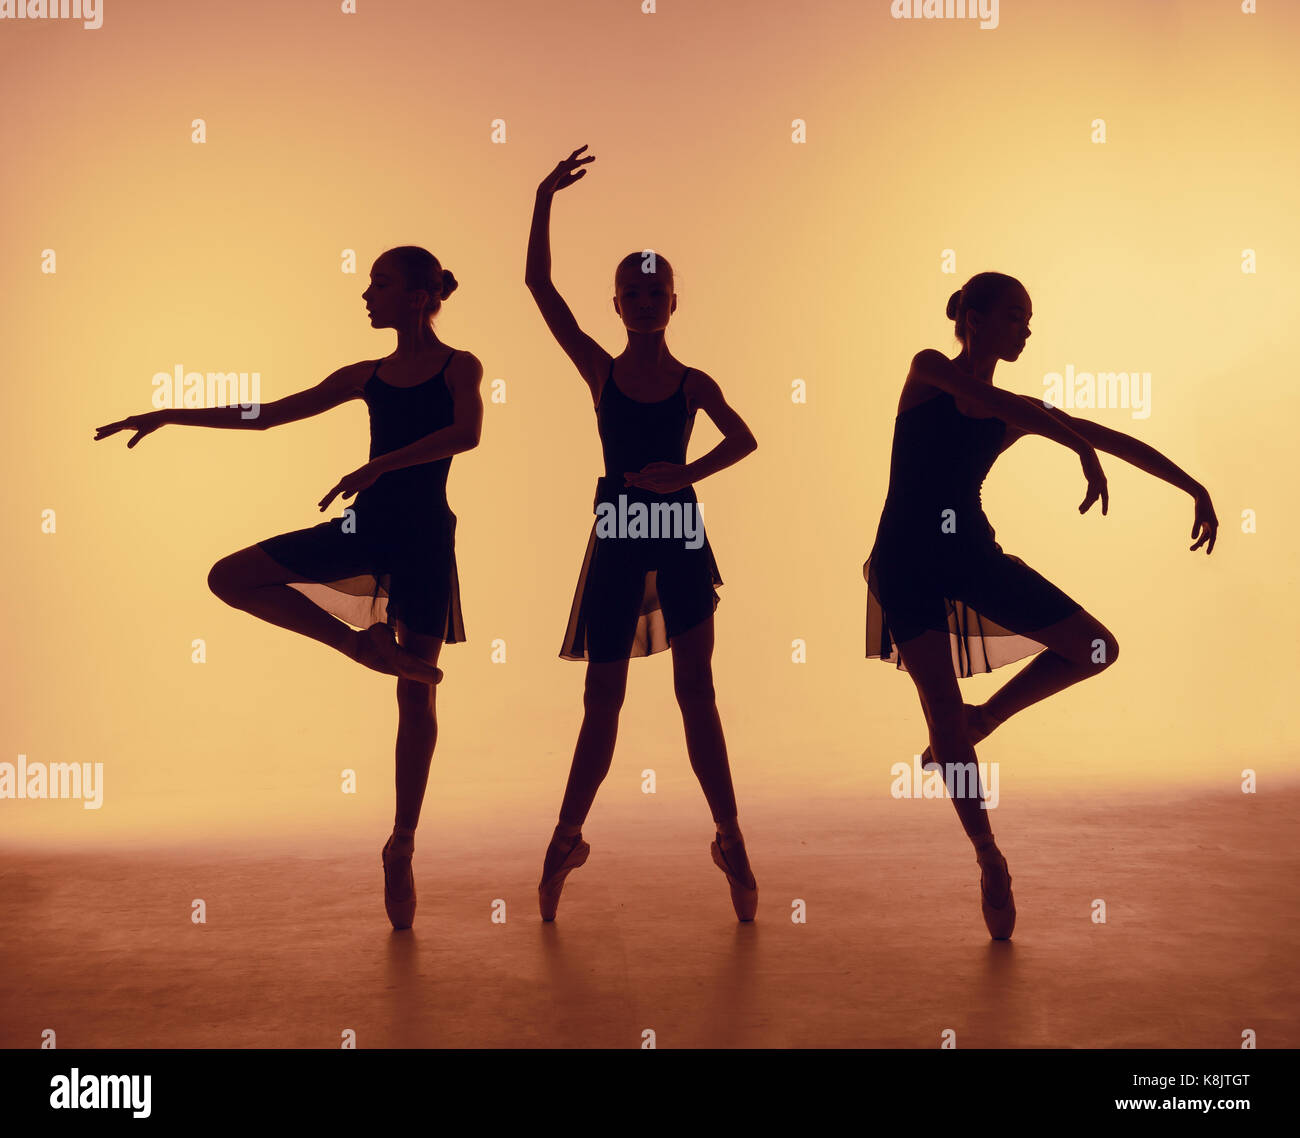 Composition From Silhouettes Of Three Young Dancers In Ballet Poses On A Orange Background